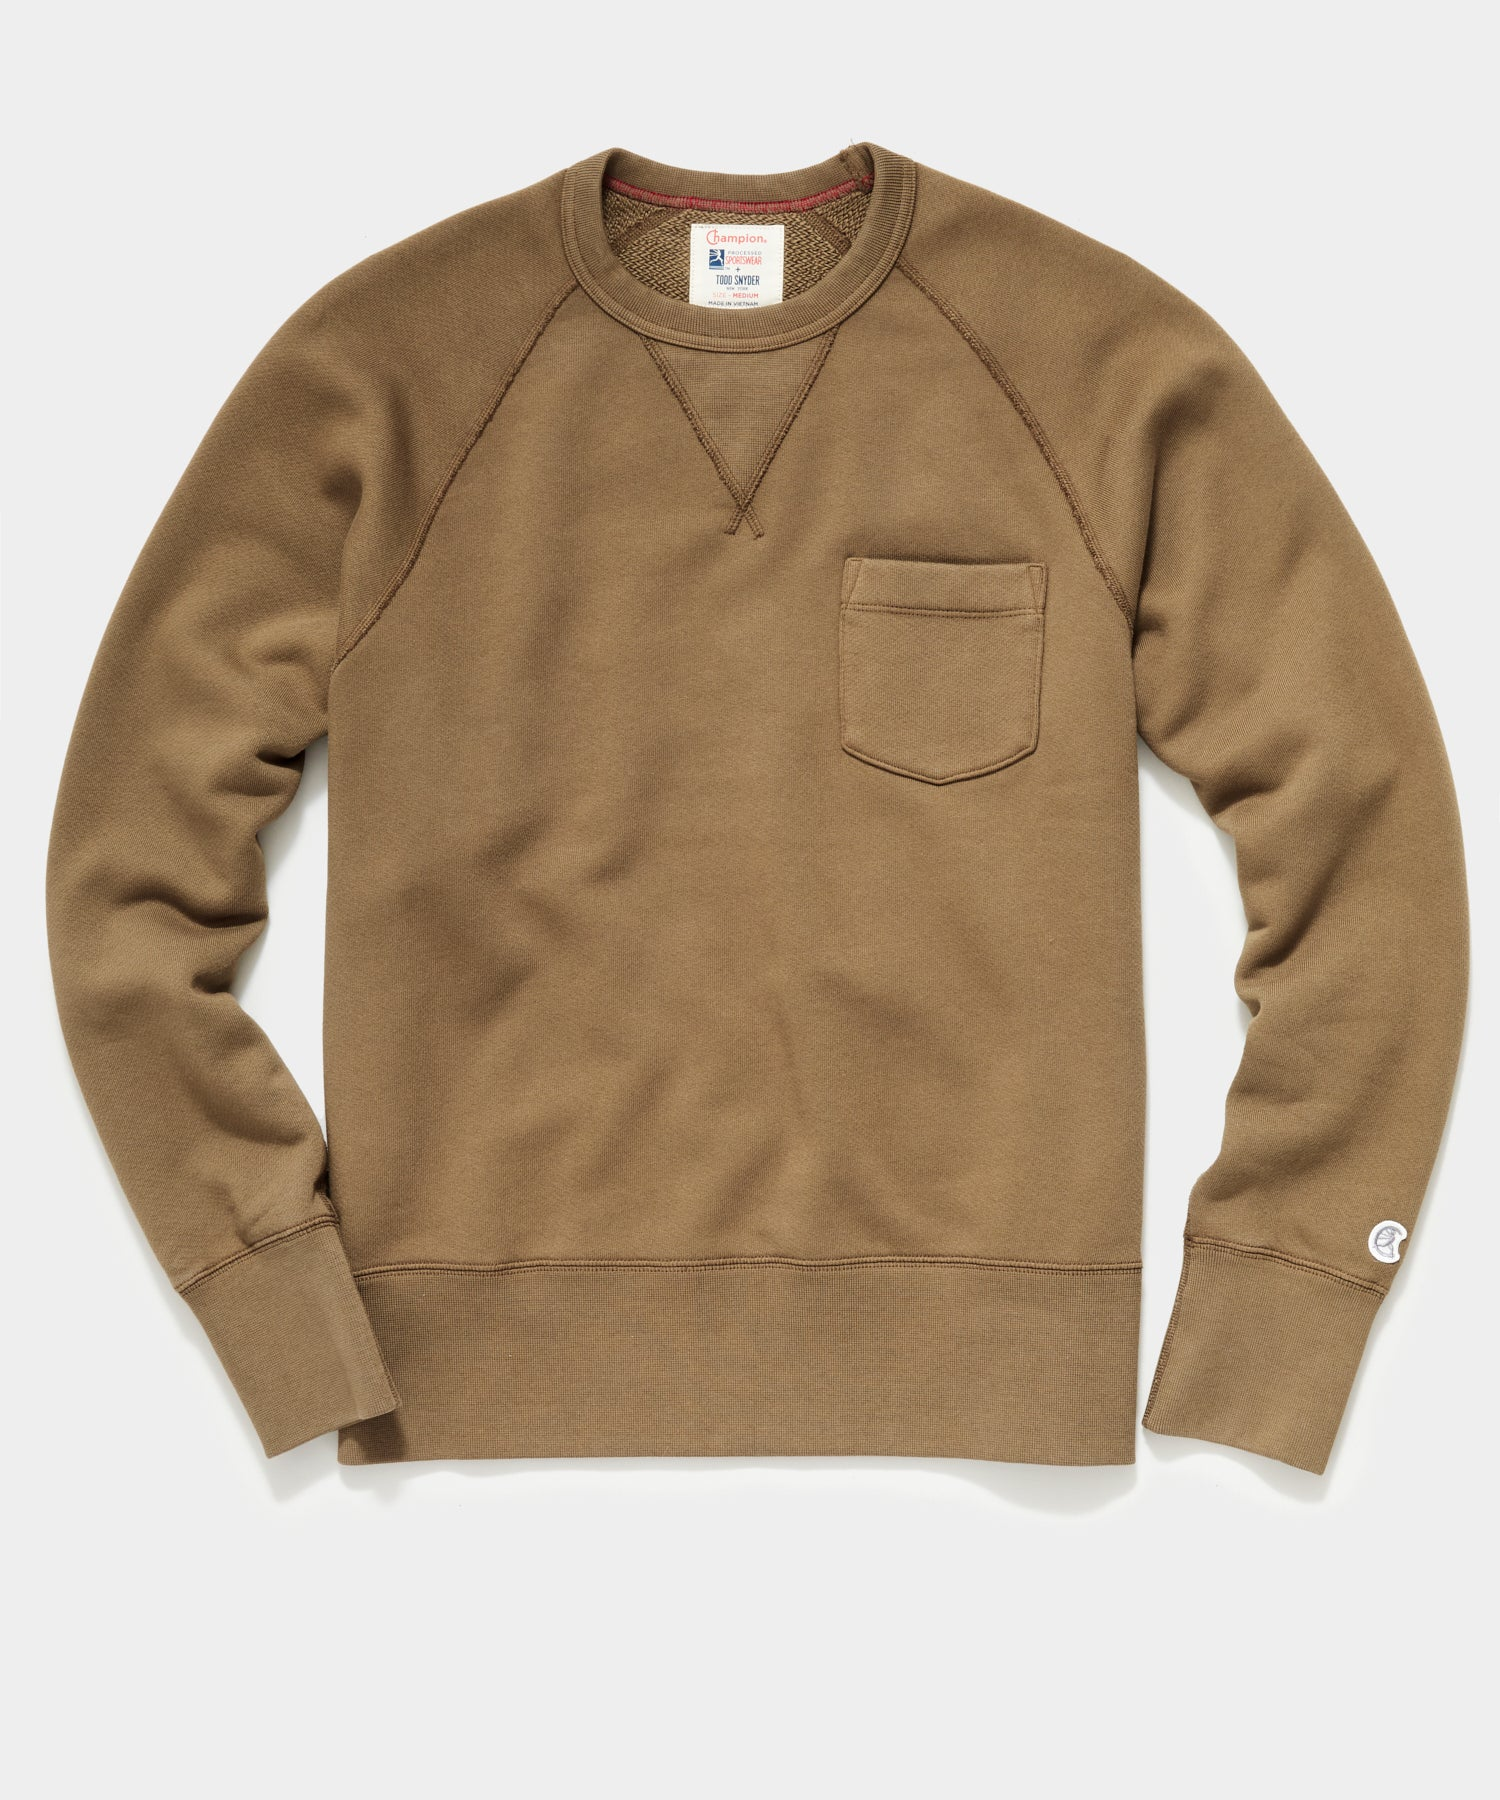 Midweight Pocket Sweatshirt in Mossy Brown